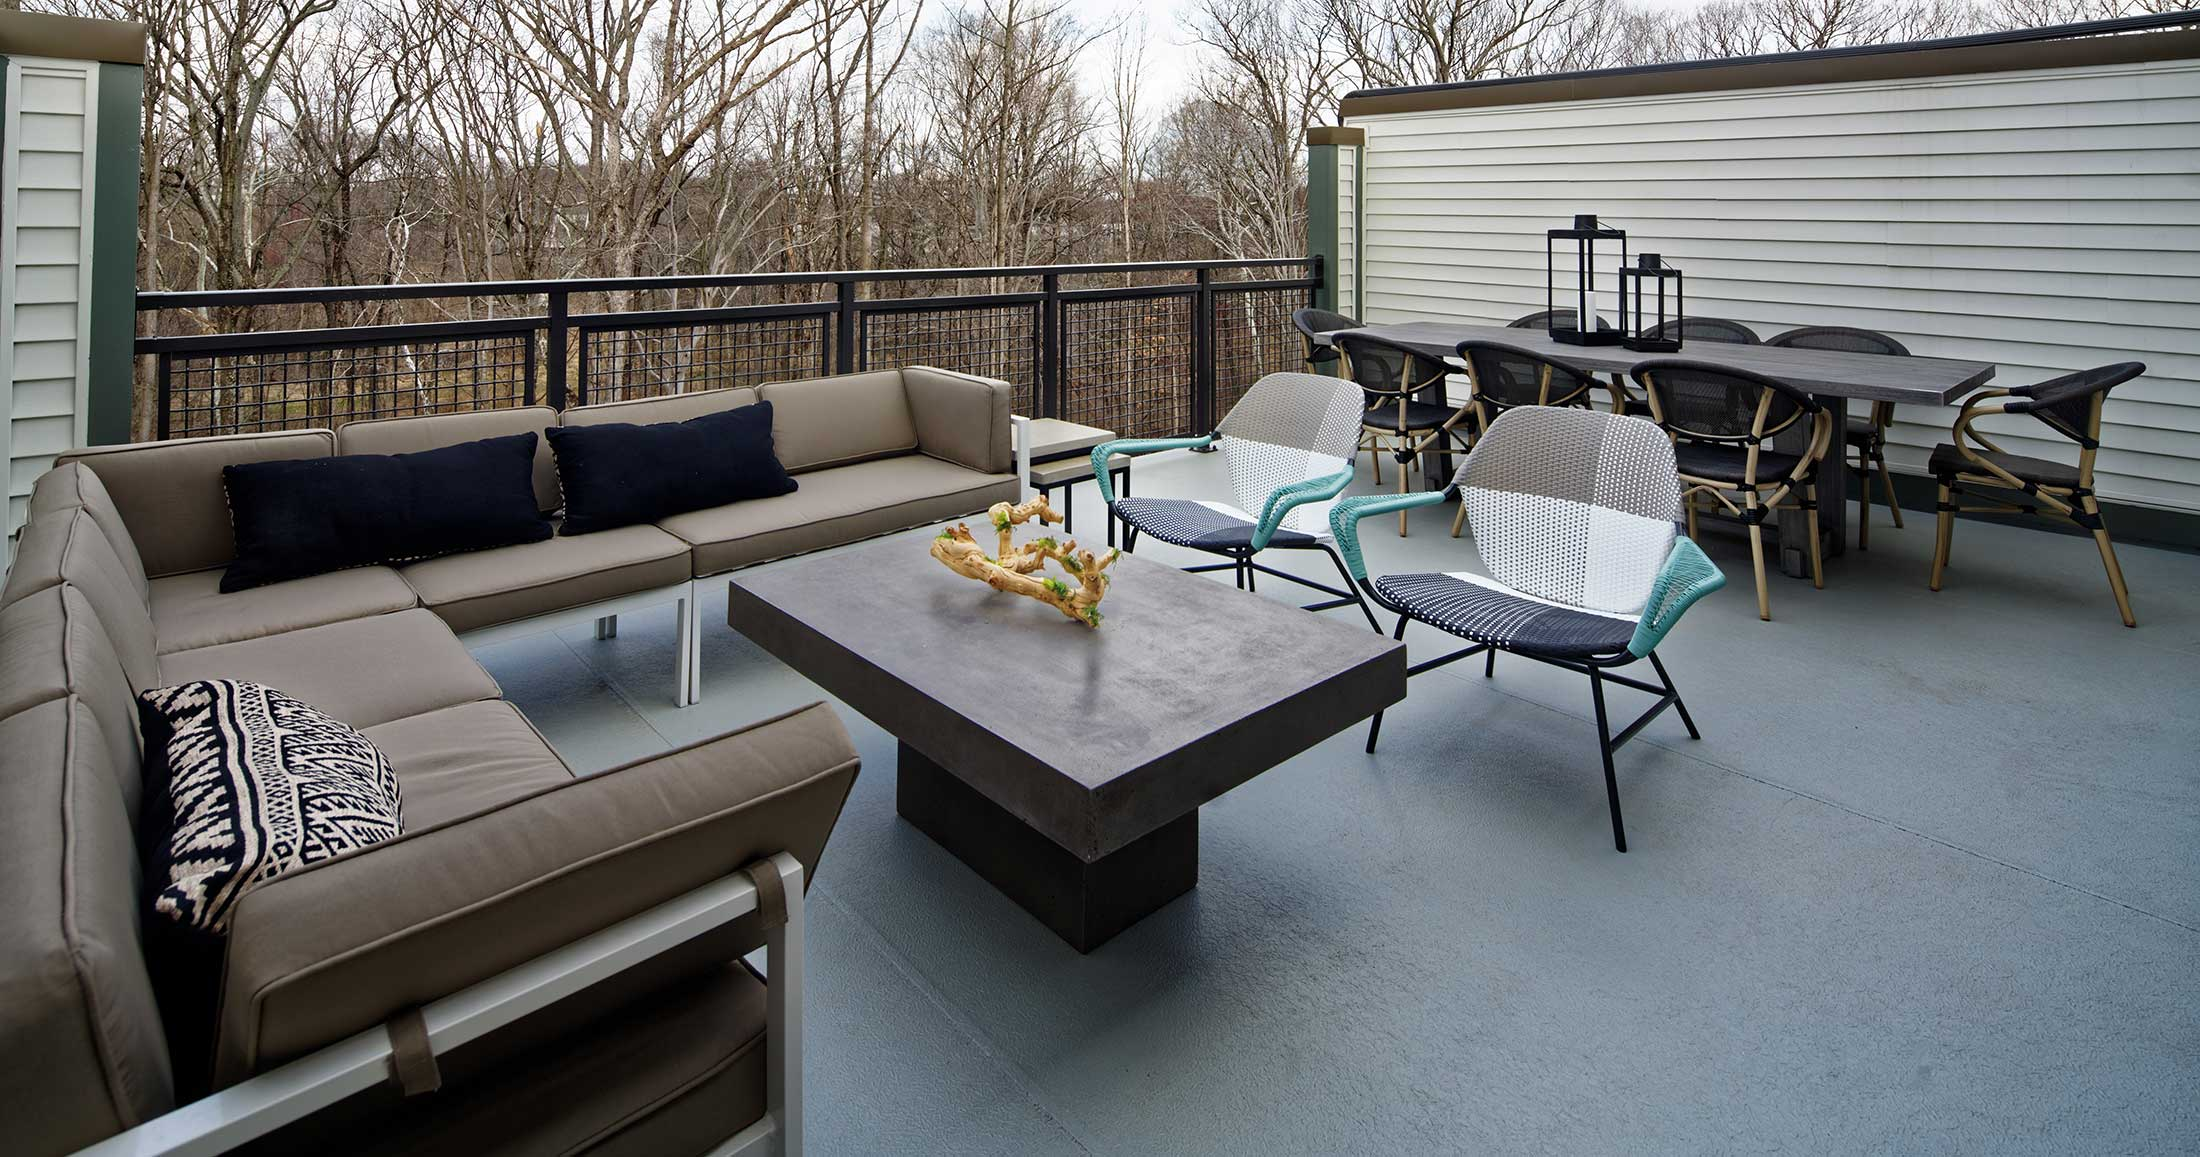 Roof Terrace, Townhomes in Chantilly VA